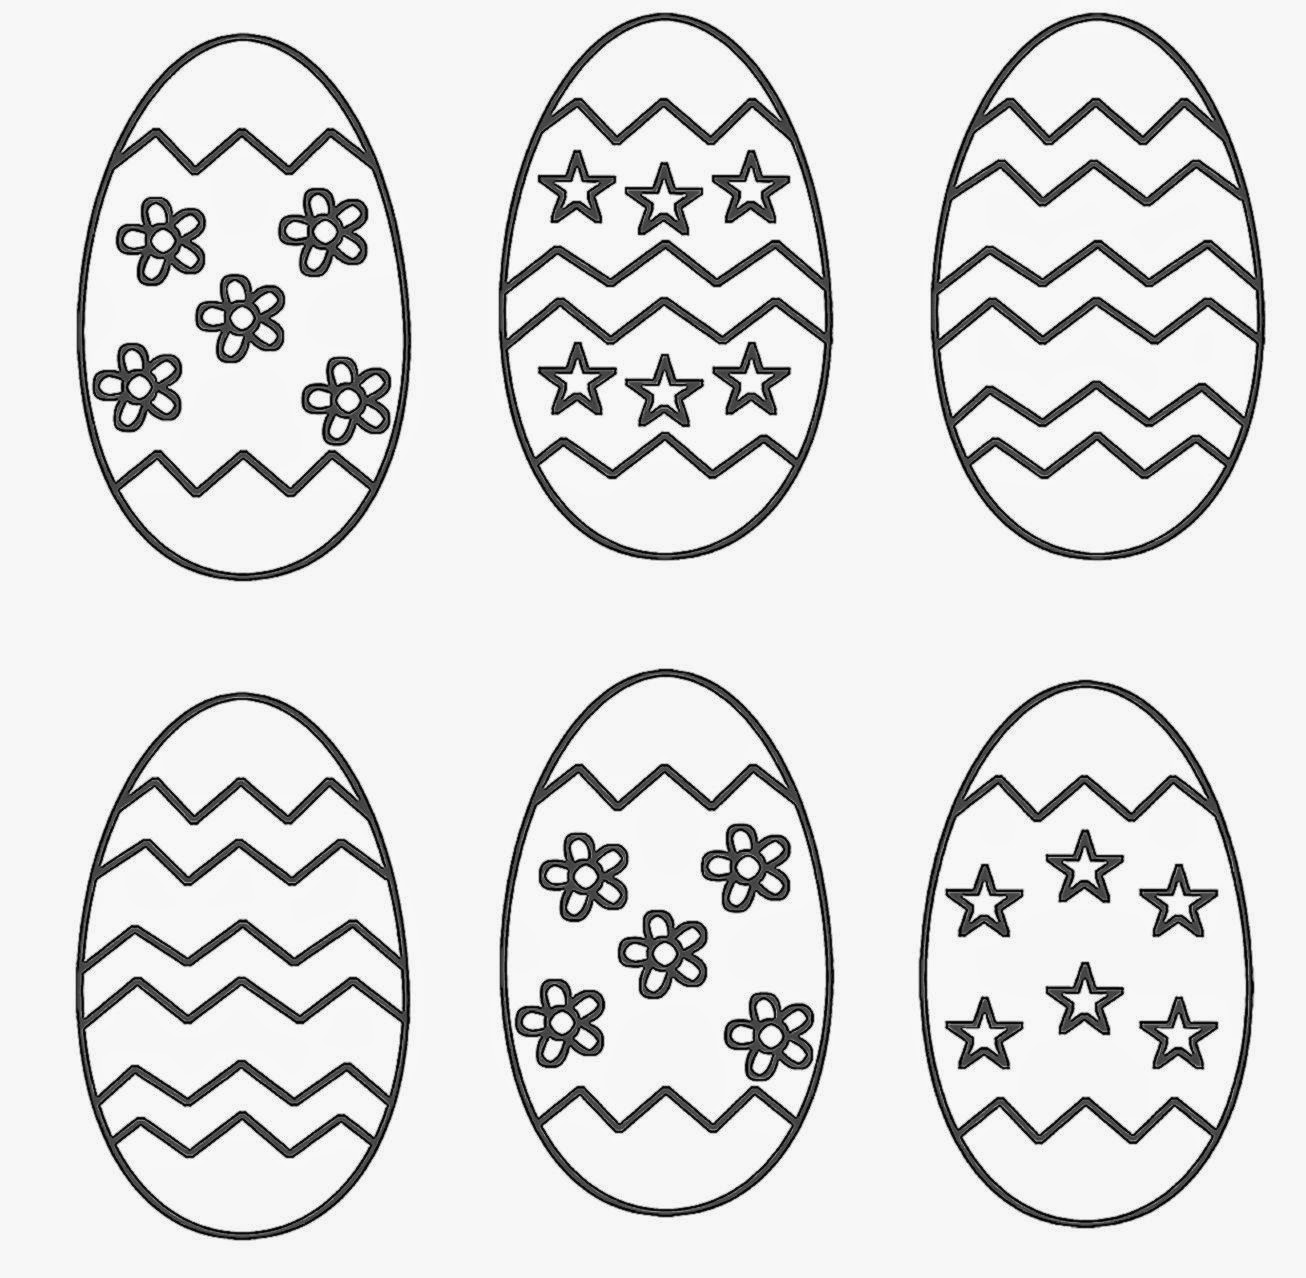 Easter egg coloring sheets free coloring sheet for Easter egg color pages